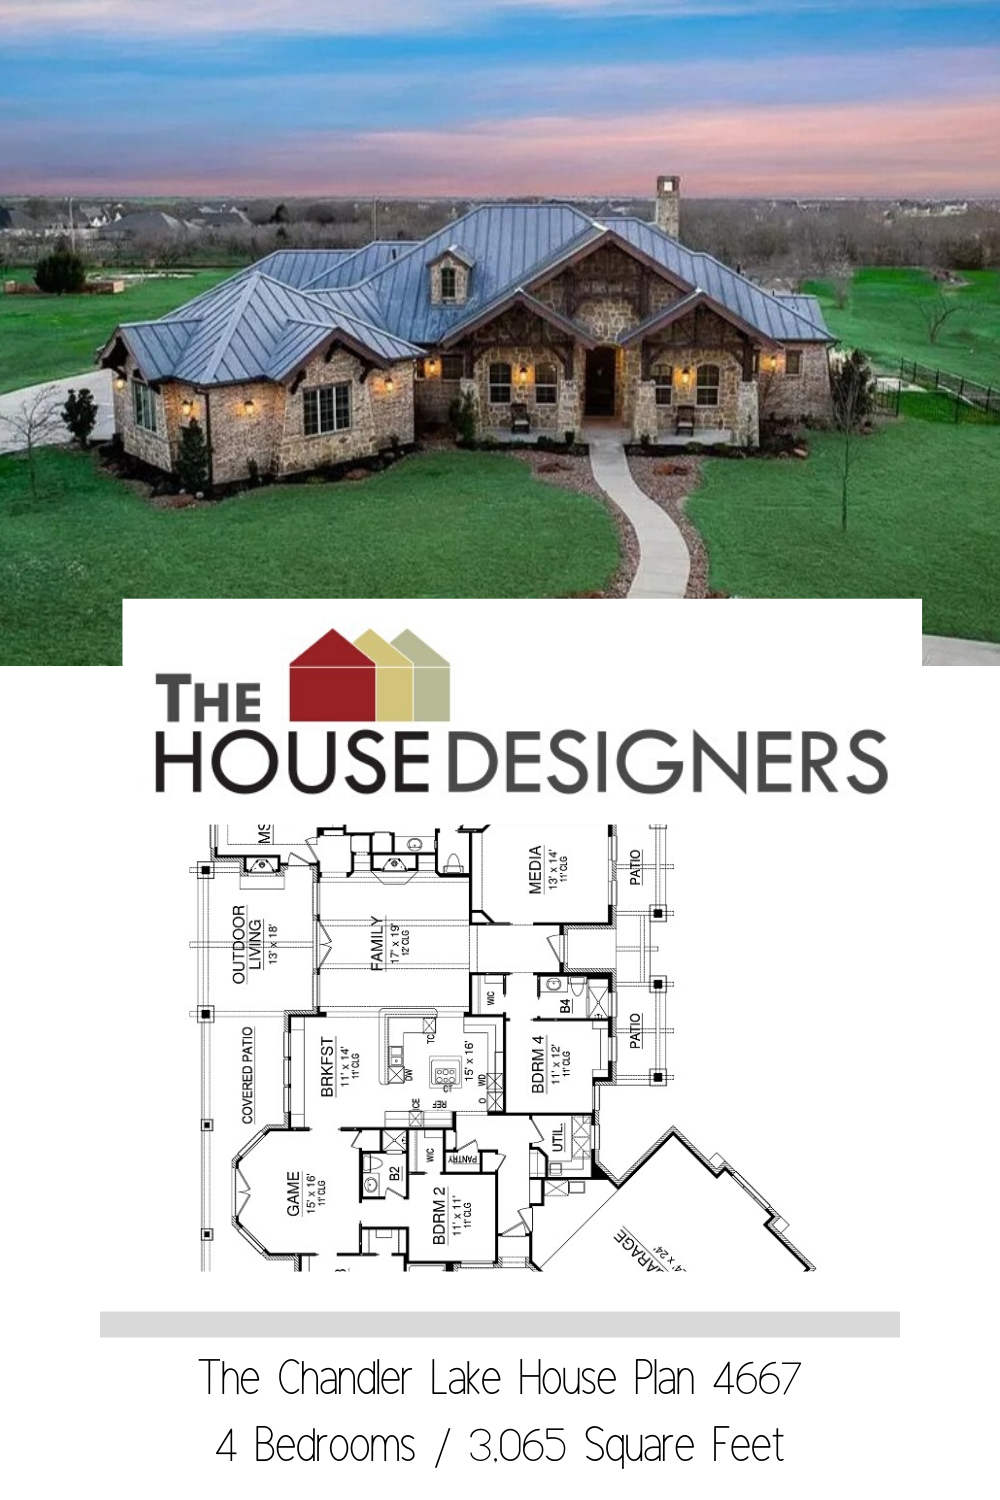 Beautiful Craftsman Style House Plan 4667 Chandlers Lake Lake House Plans Craftsman Style House Plans House Plans